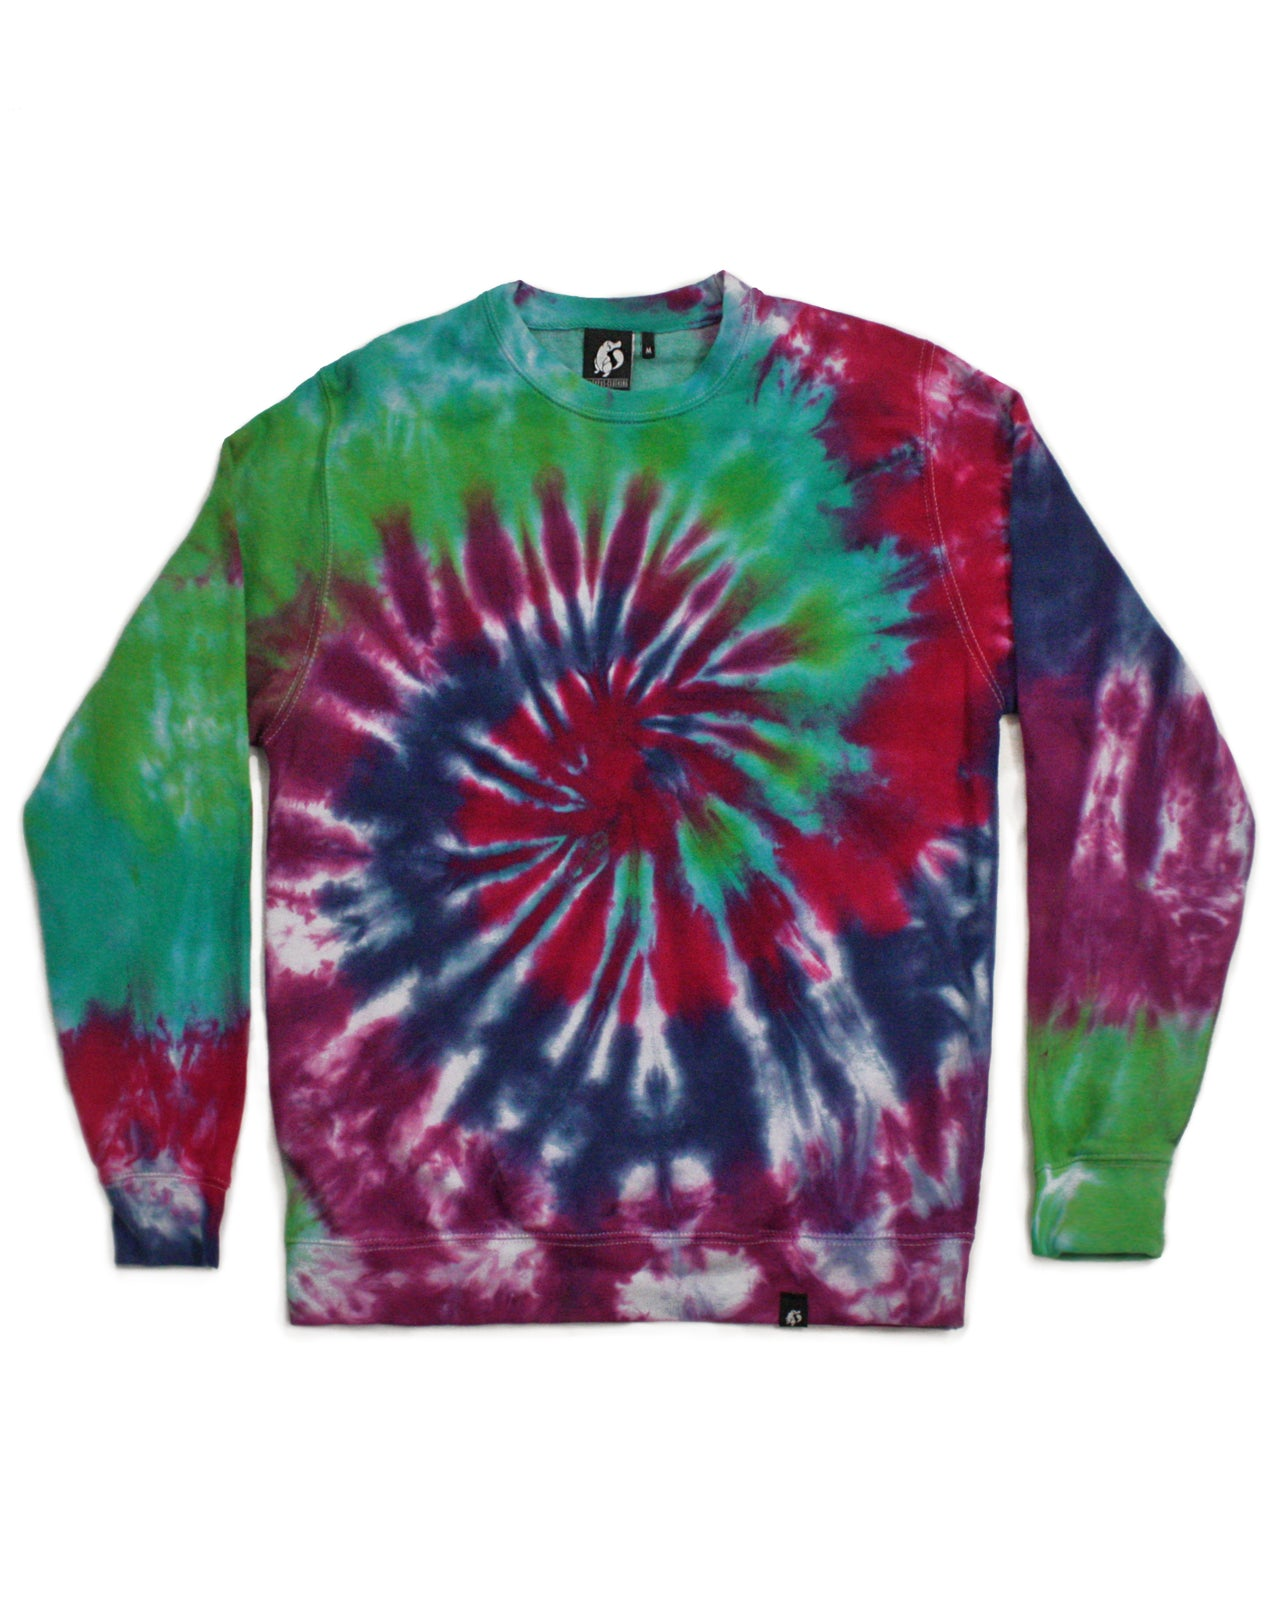 Tie Dye Rainbow Purple and Turquoise Spiral Sweatshirt - Size M